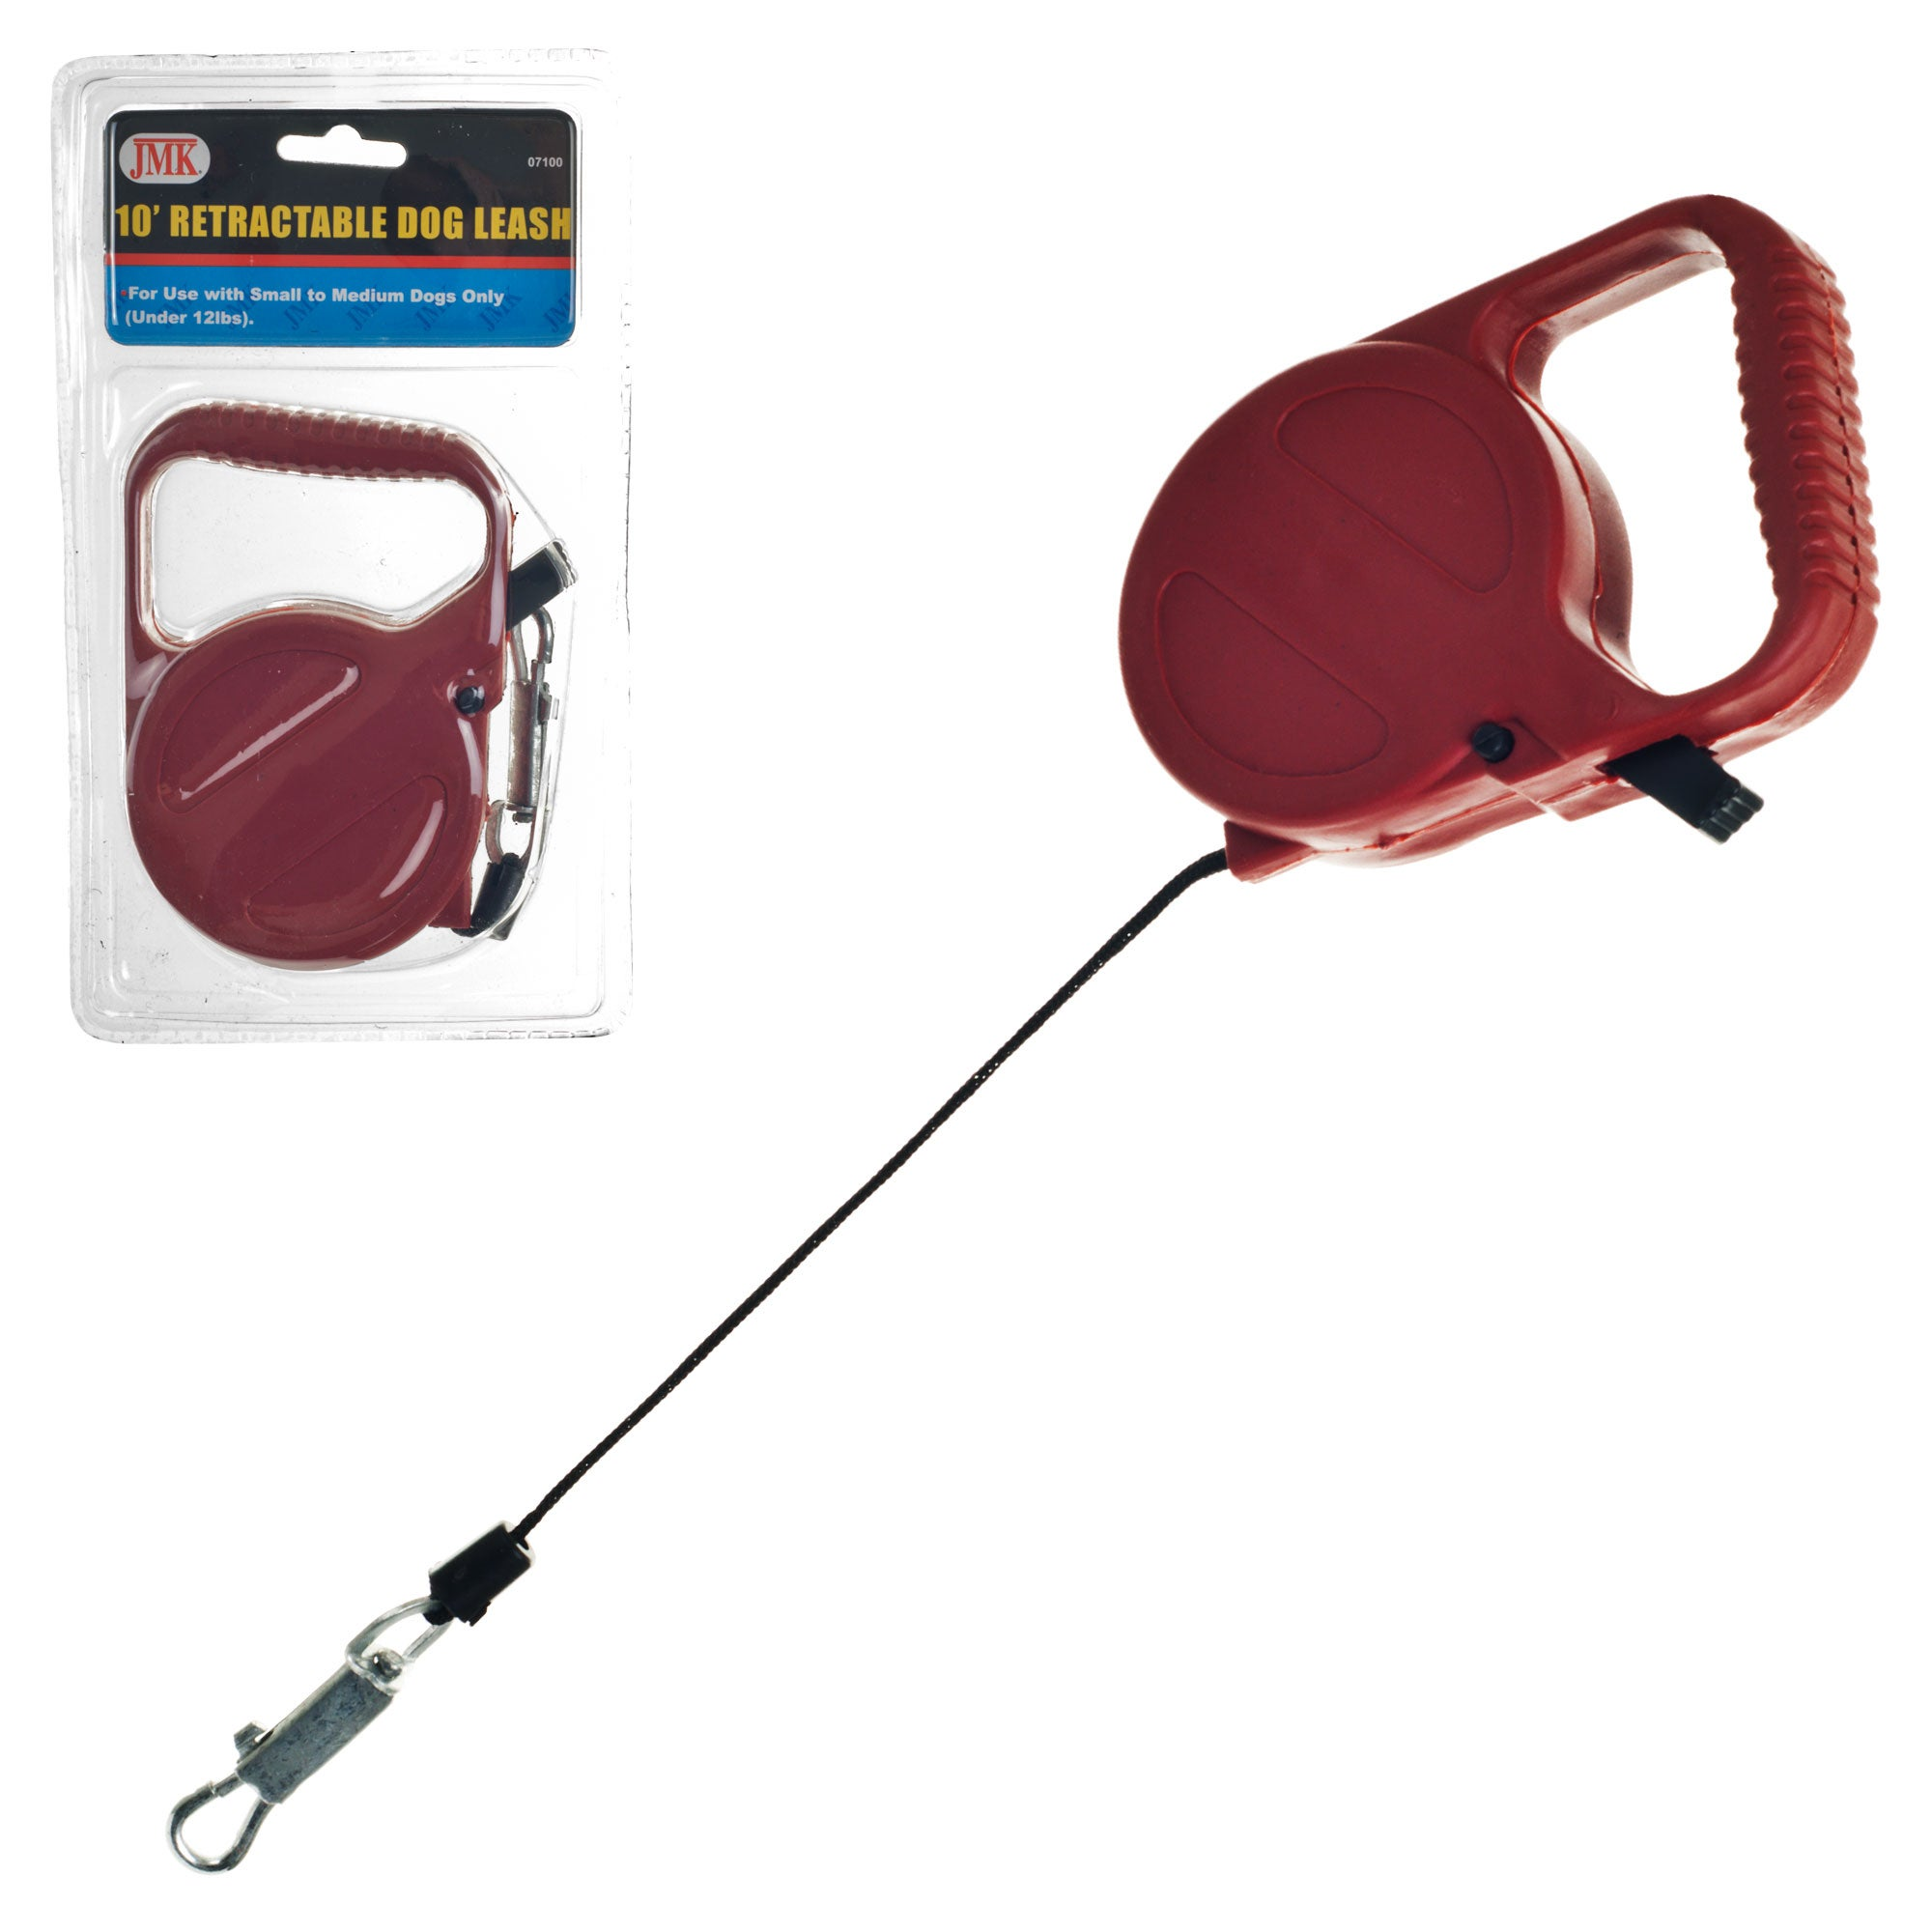 TG 10-foot Retractable Dog Leash